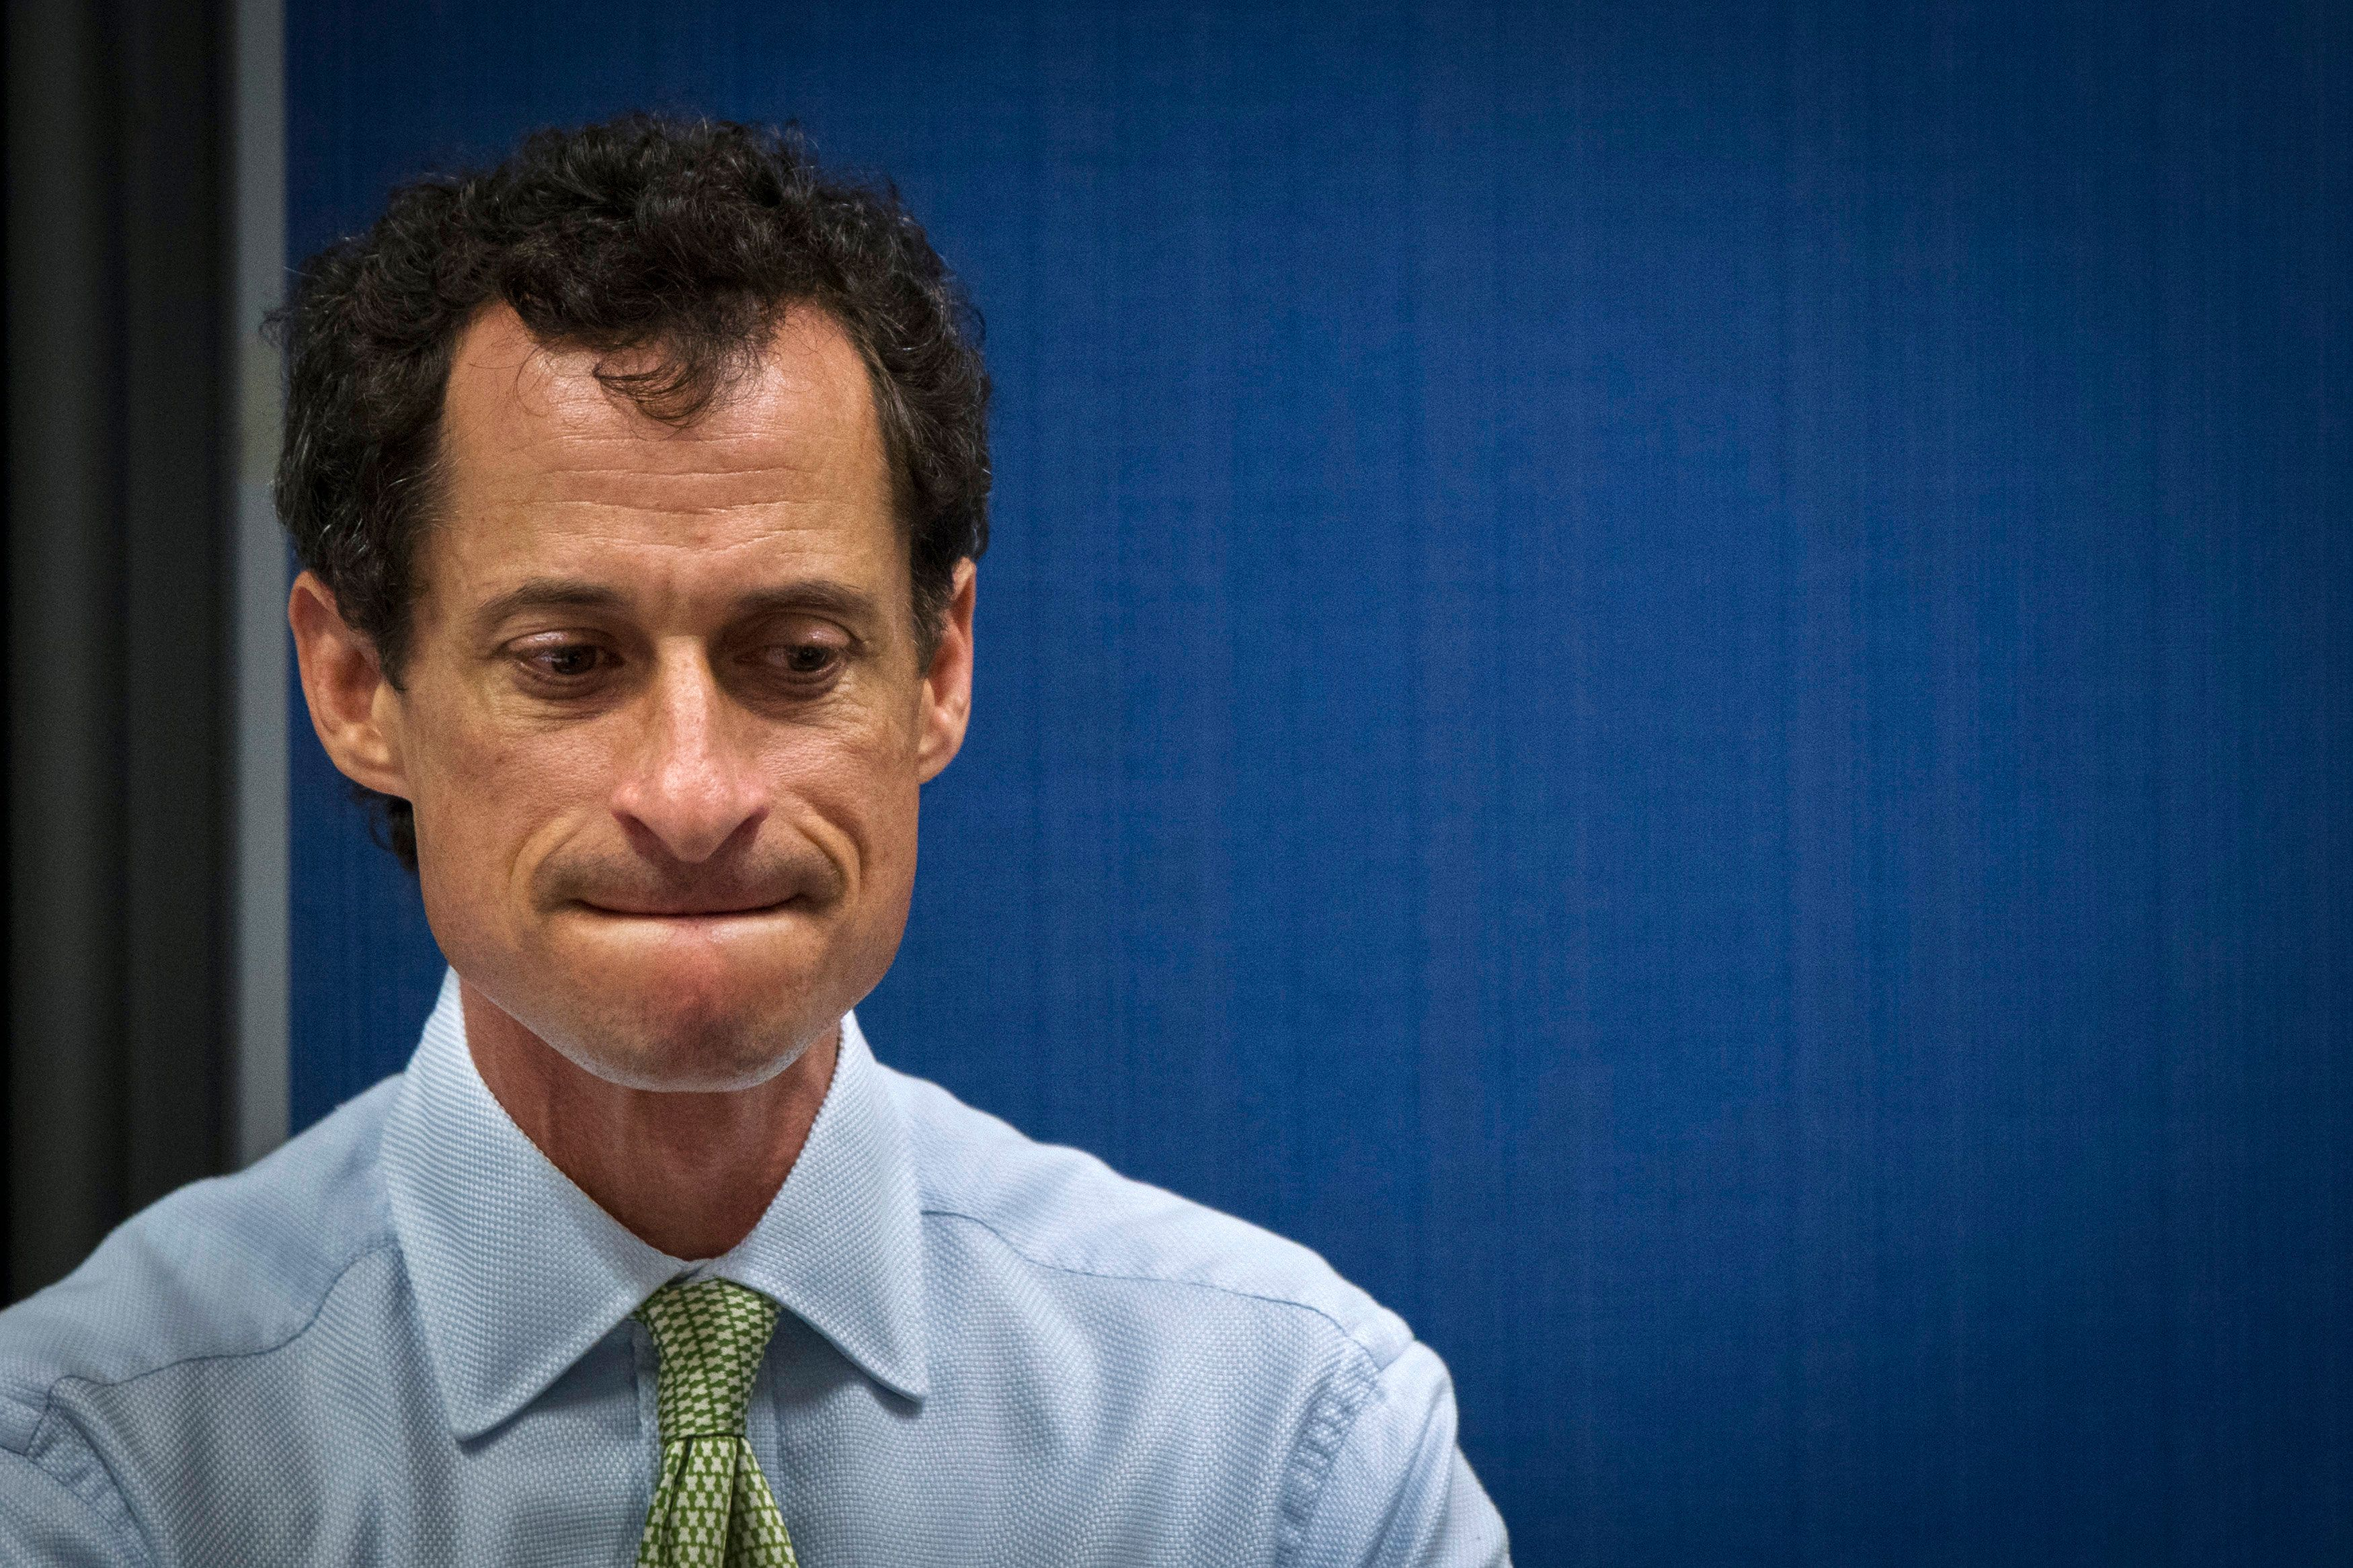 Former U.S. congressman from New York and current democratic candidate for New York City Mayor Anthony Weiner listens to fellow candidates speak at a debate held at the Museum of Tolerance in New York August 14, 2013.  REUTERS/Lucas Jackson (UNITED STATES - Tags: POLITICS)